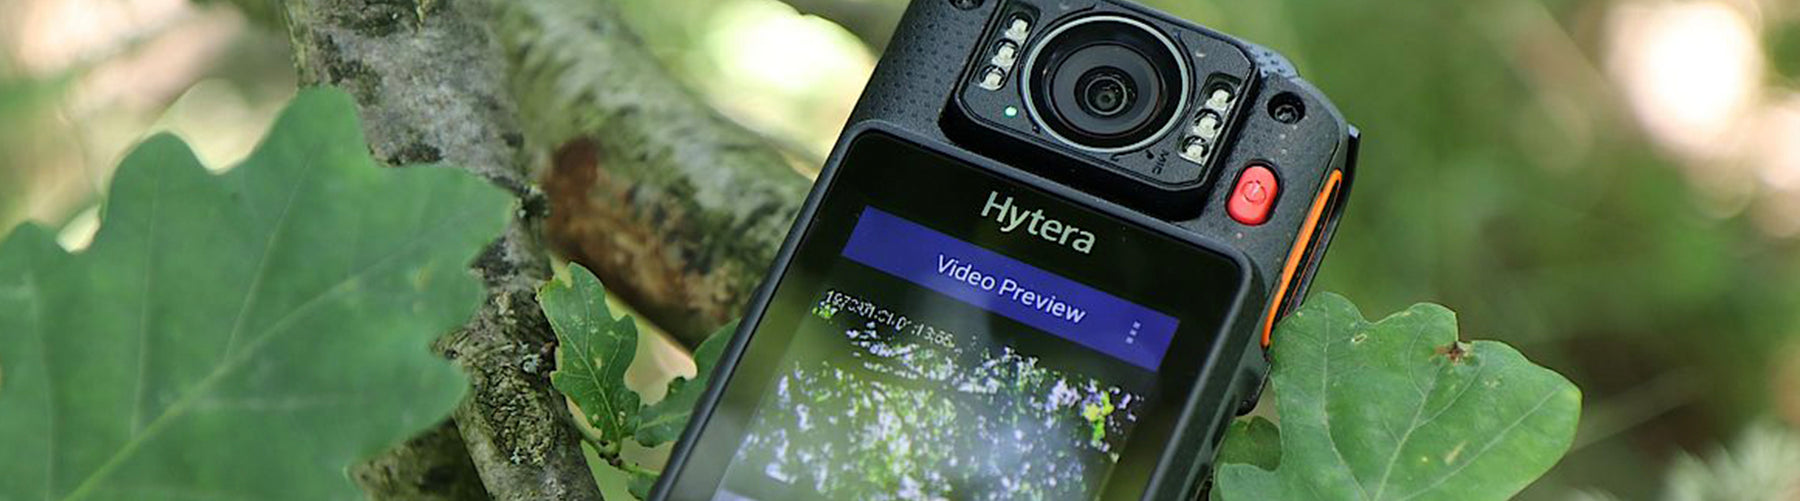 The Best Body Camera Around? The Hytera VM780 Body Camera is the Most Feature Rich Device Currently on the Market